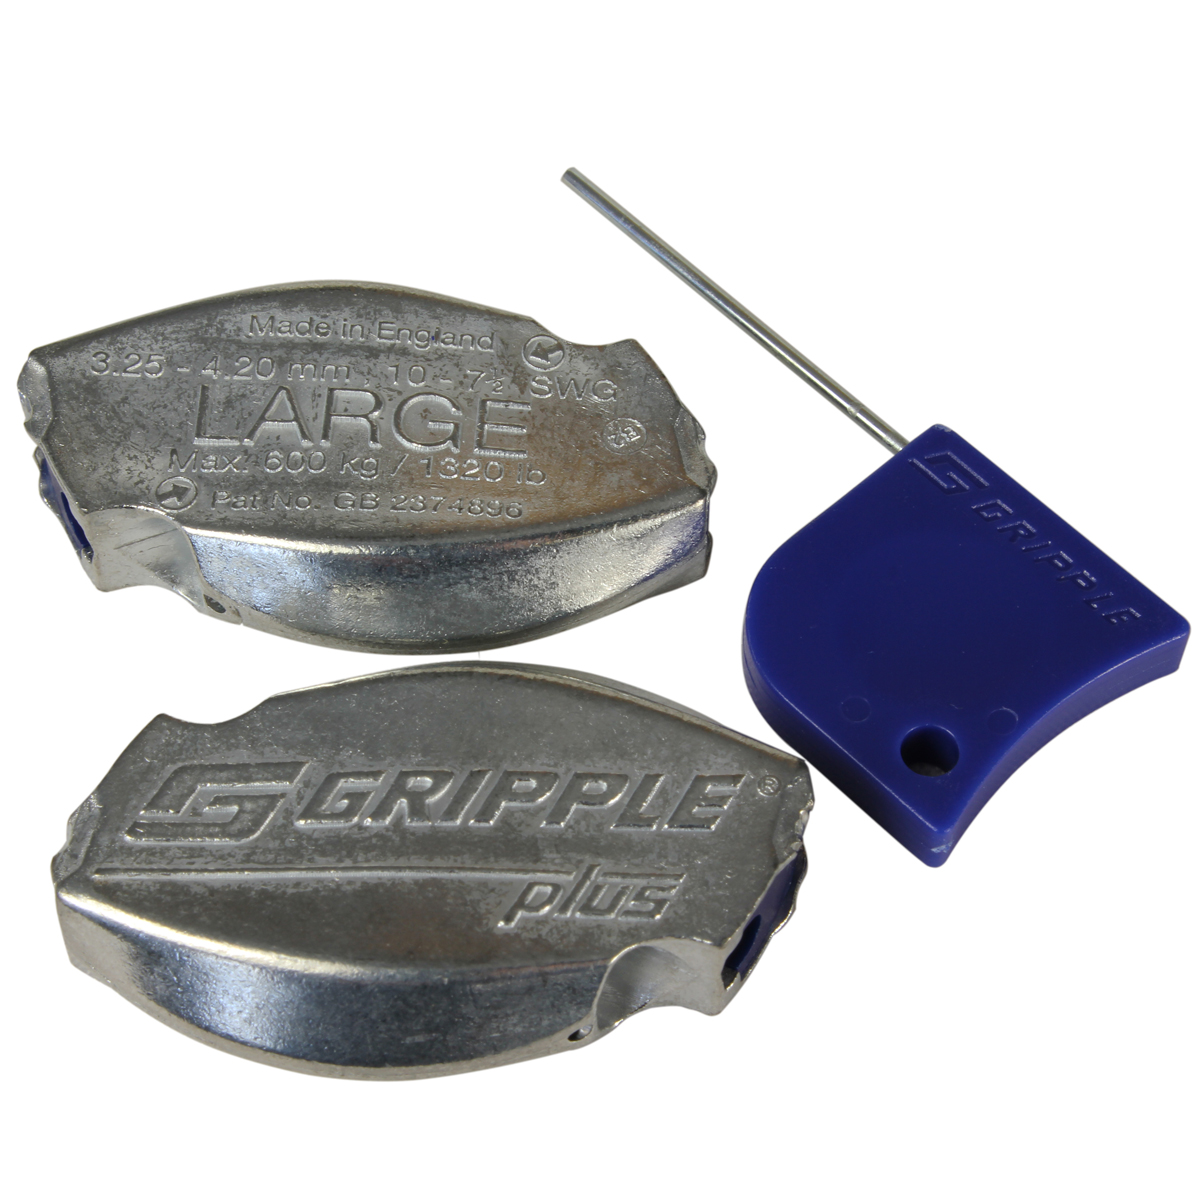 Gripple Cable Adjusters